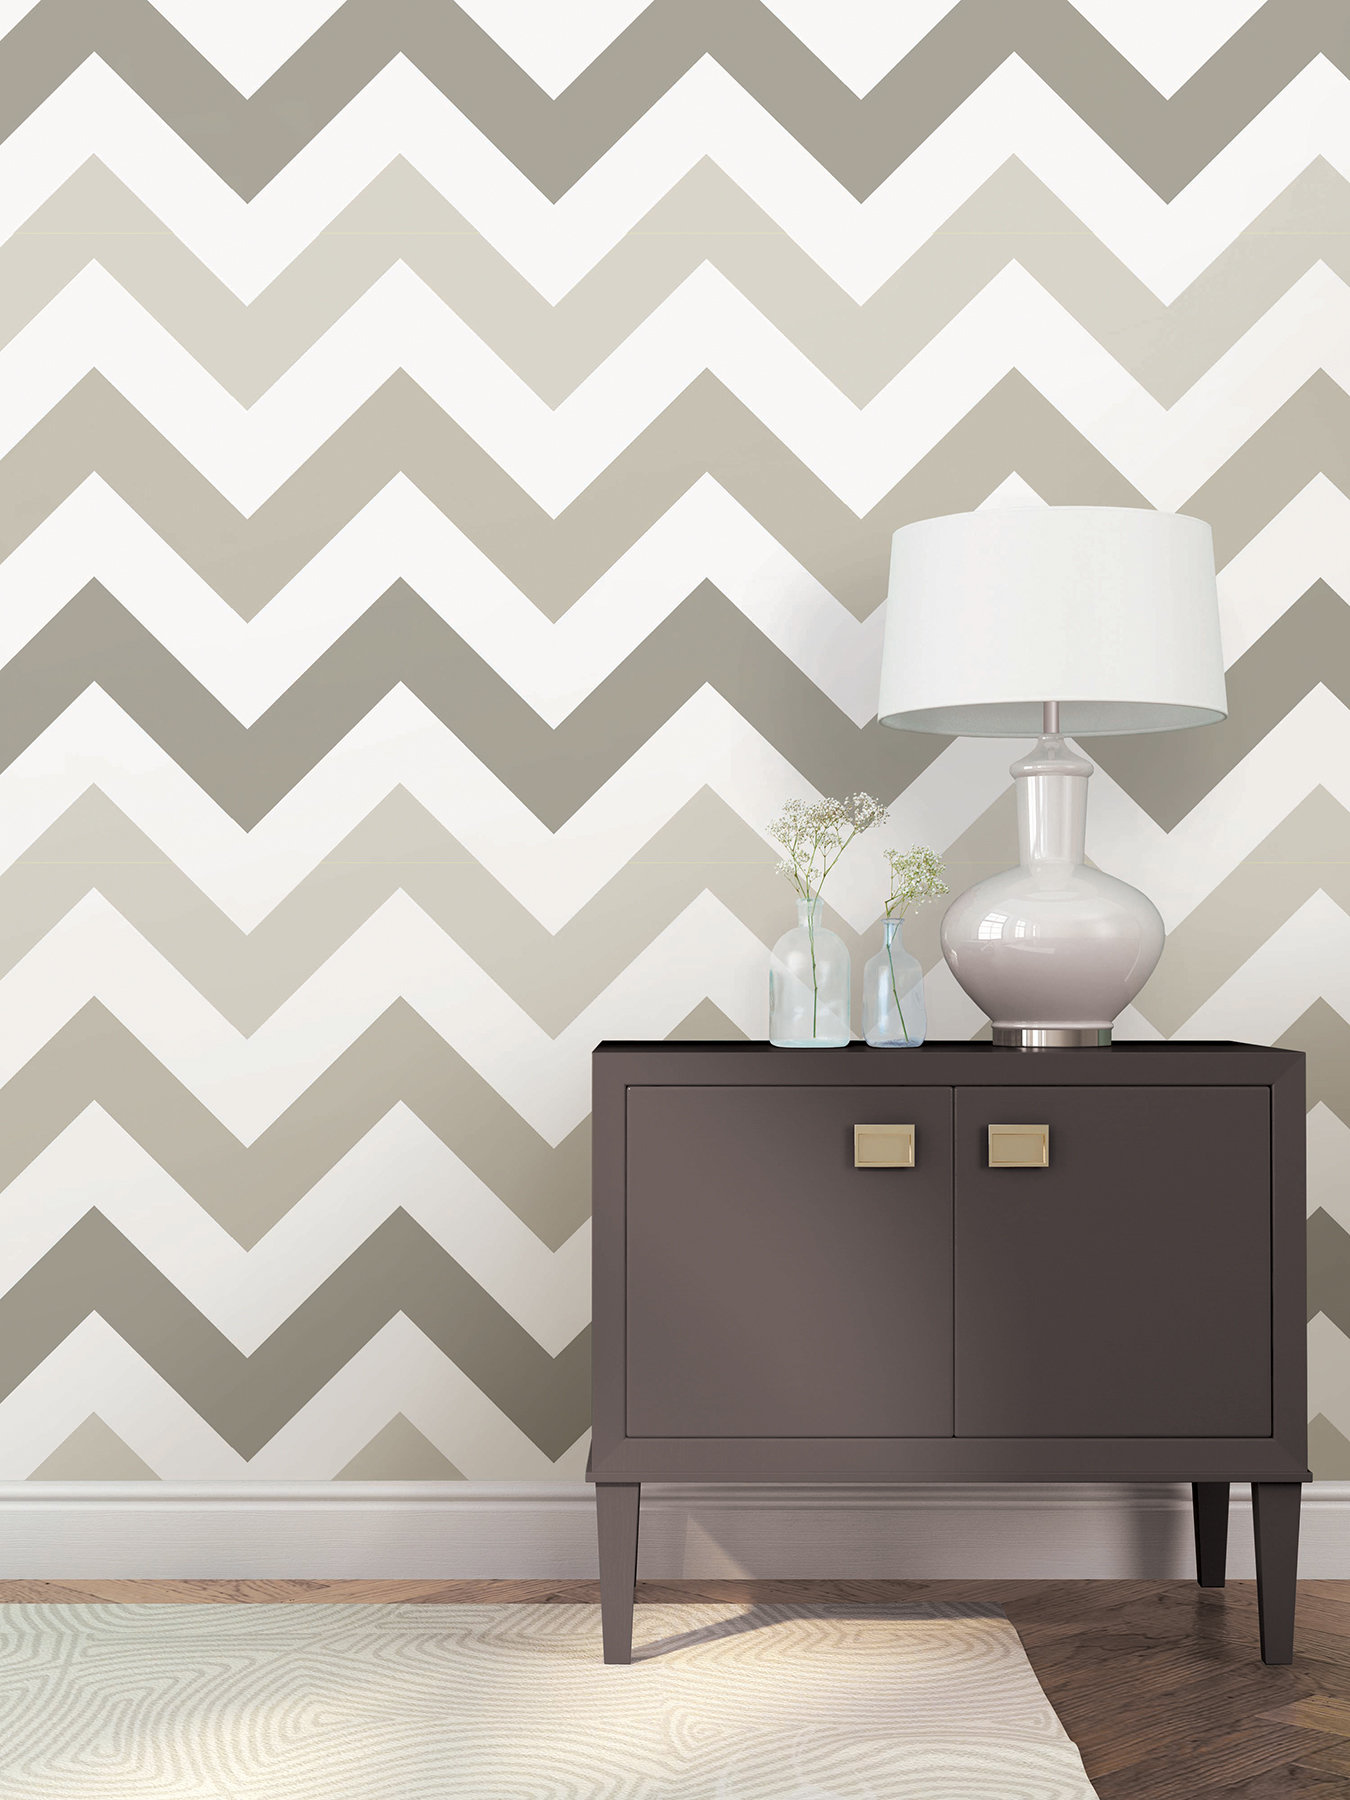 WallPops Taupe Zig Zag Wallpaper Roll Reviews Wayfair 1350x1800